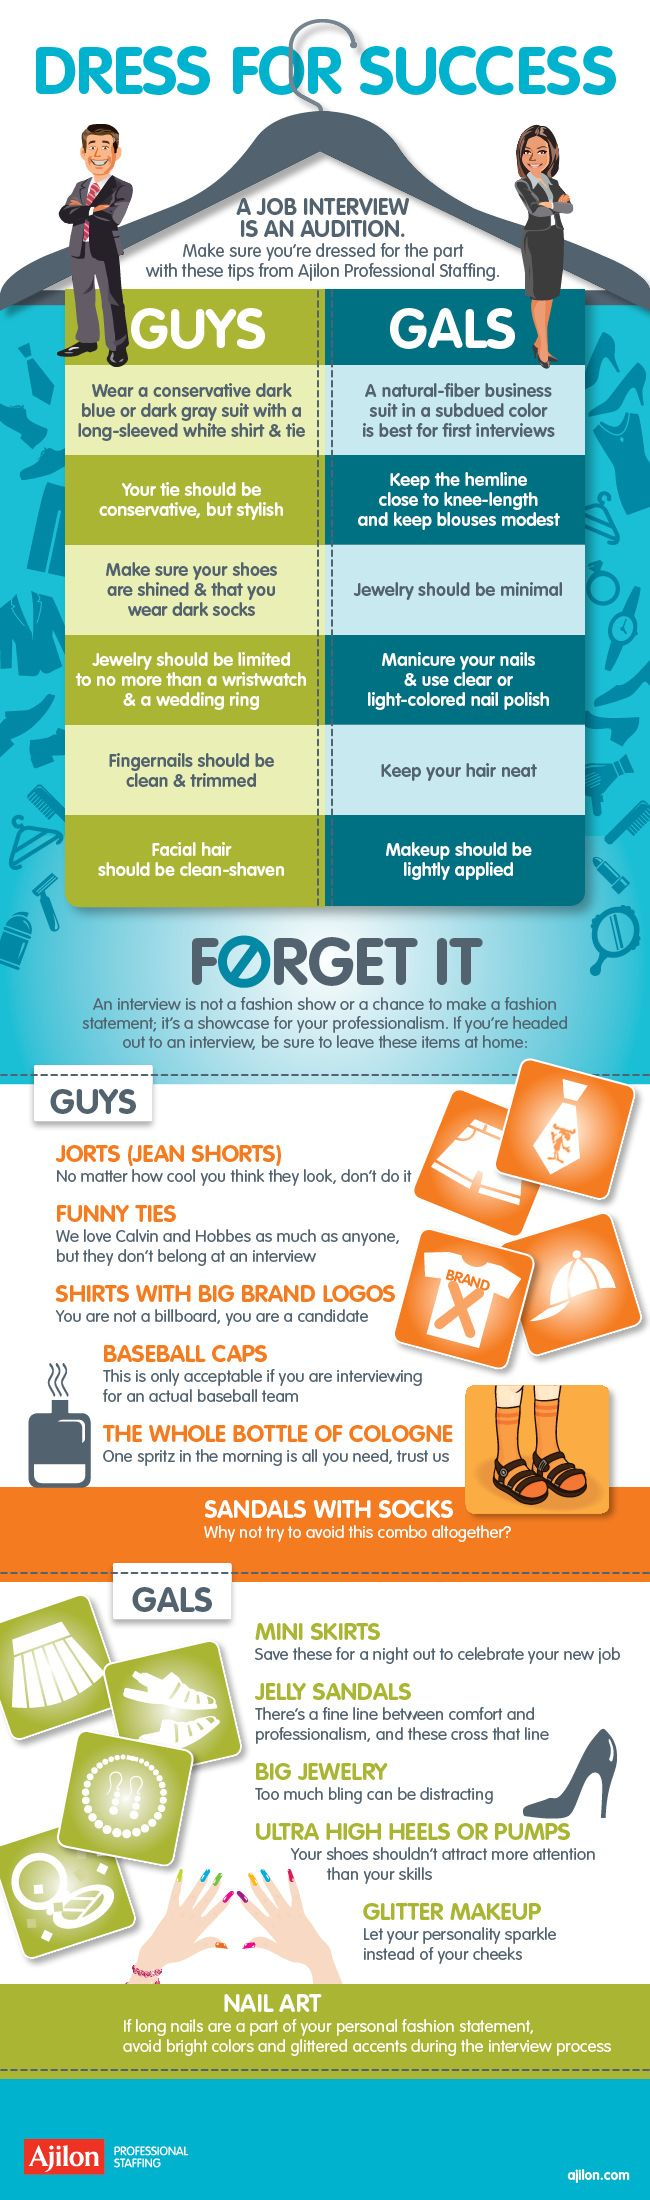 Dress for Success #Infographic #Career #Dressing